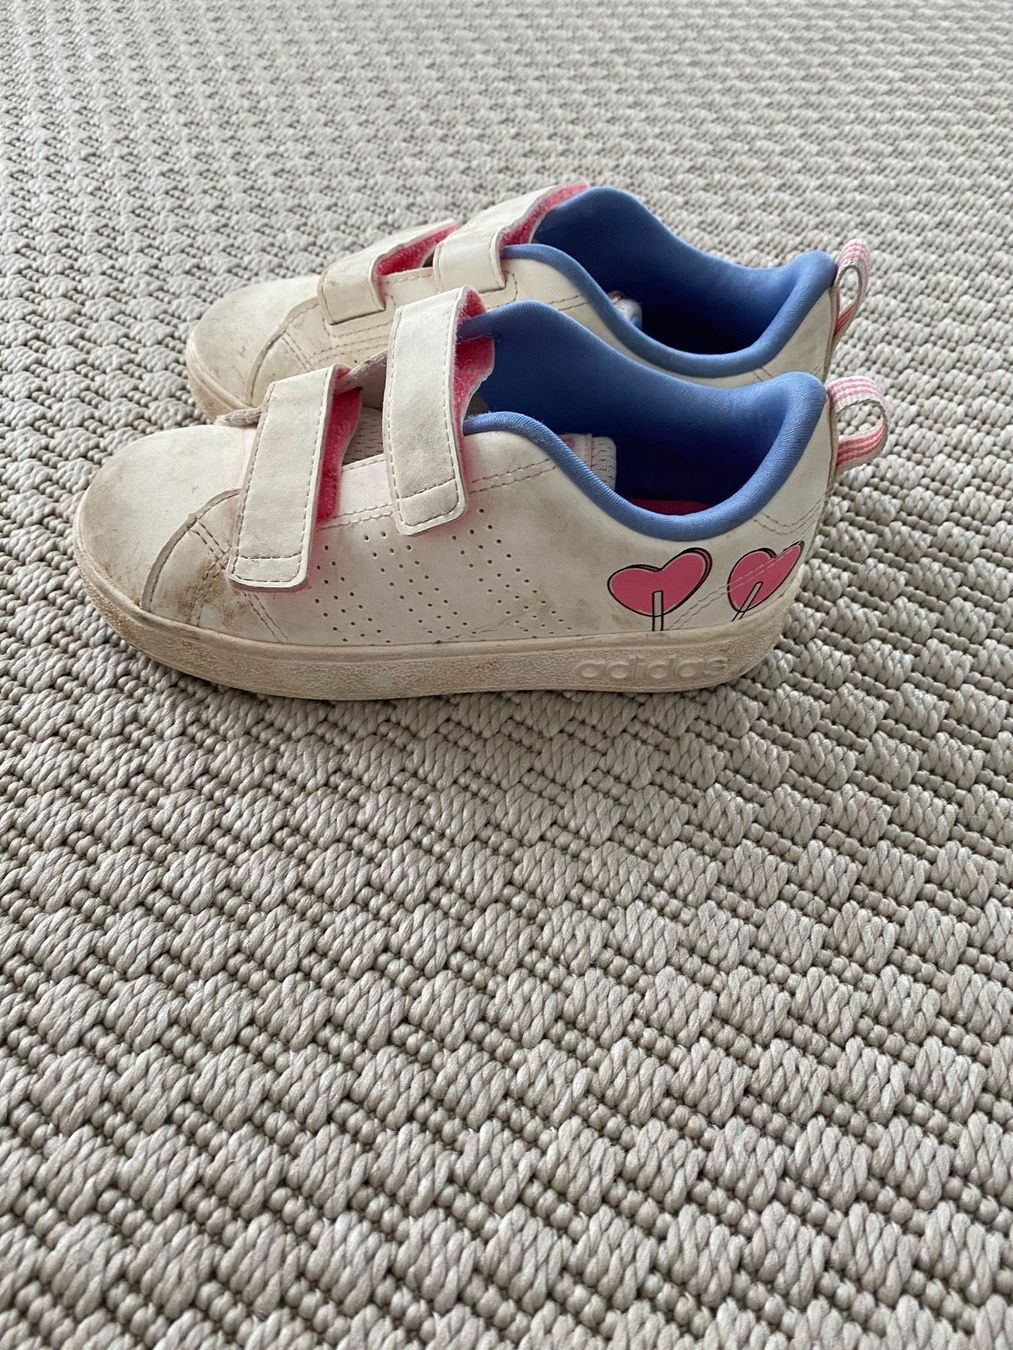 Adidas baskets taille 27